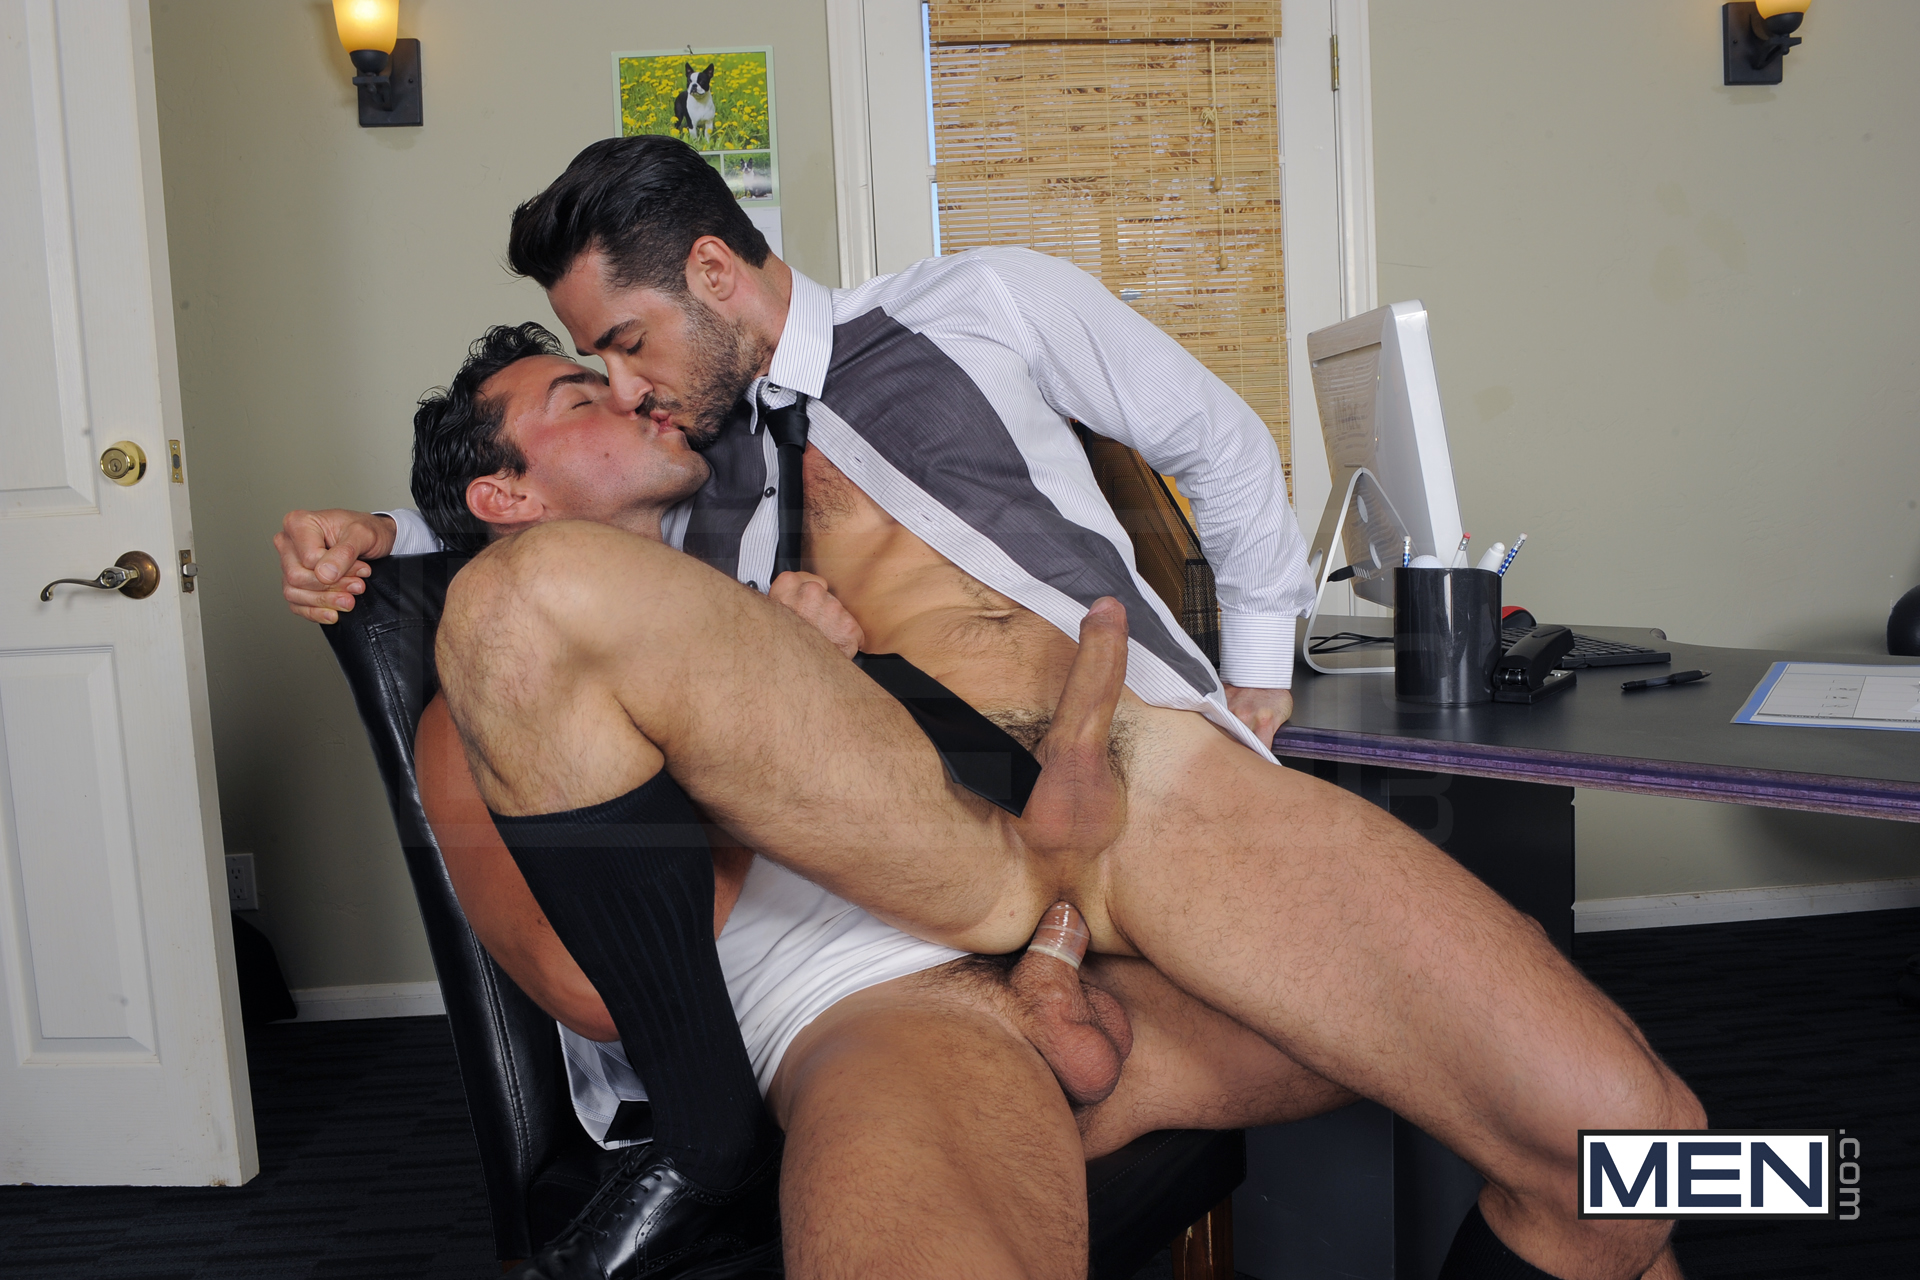 from Jedidiah gay sex fetish men suits